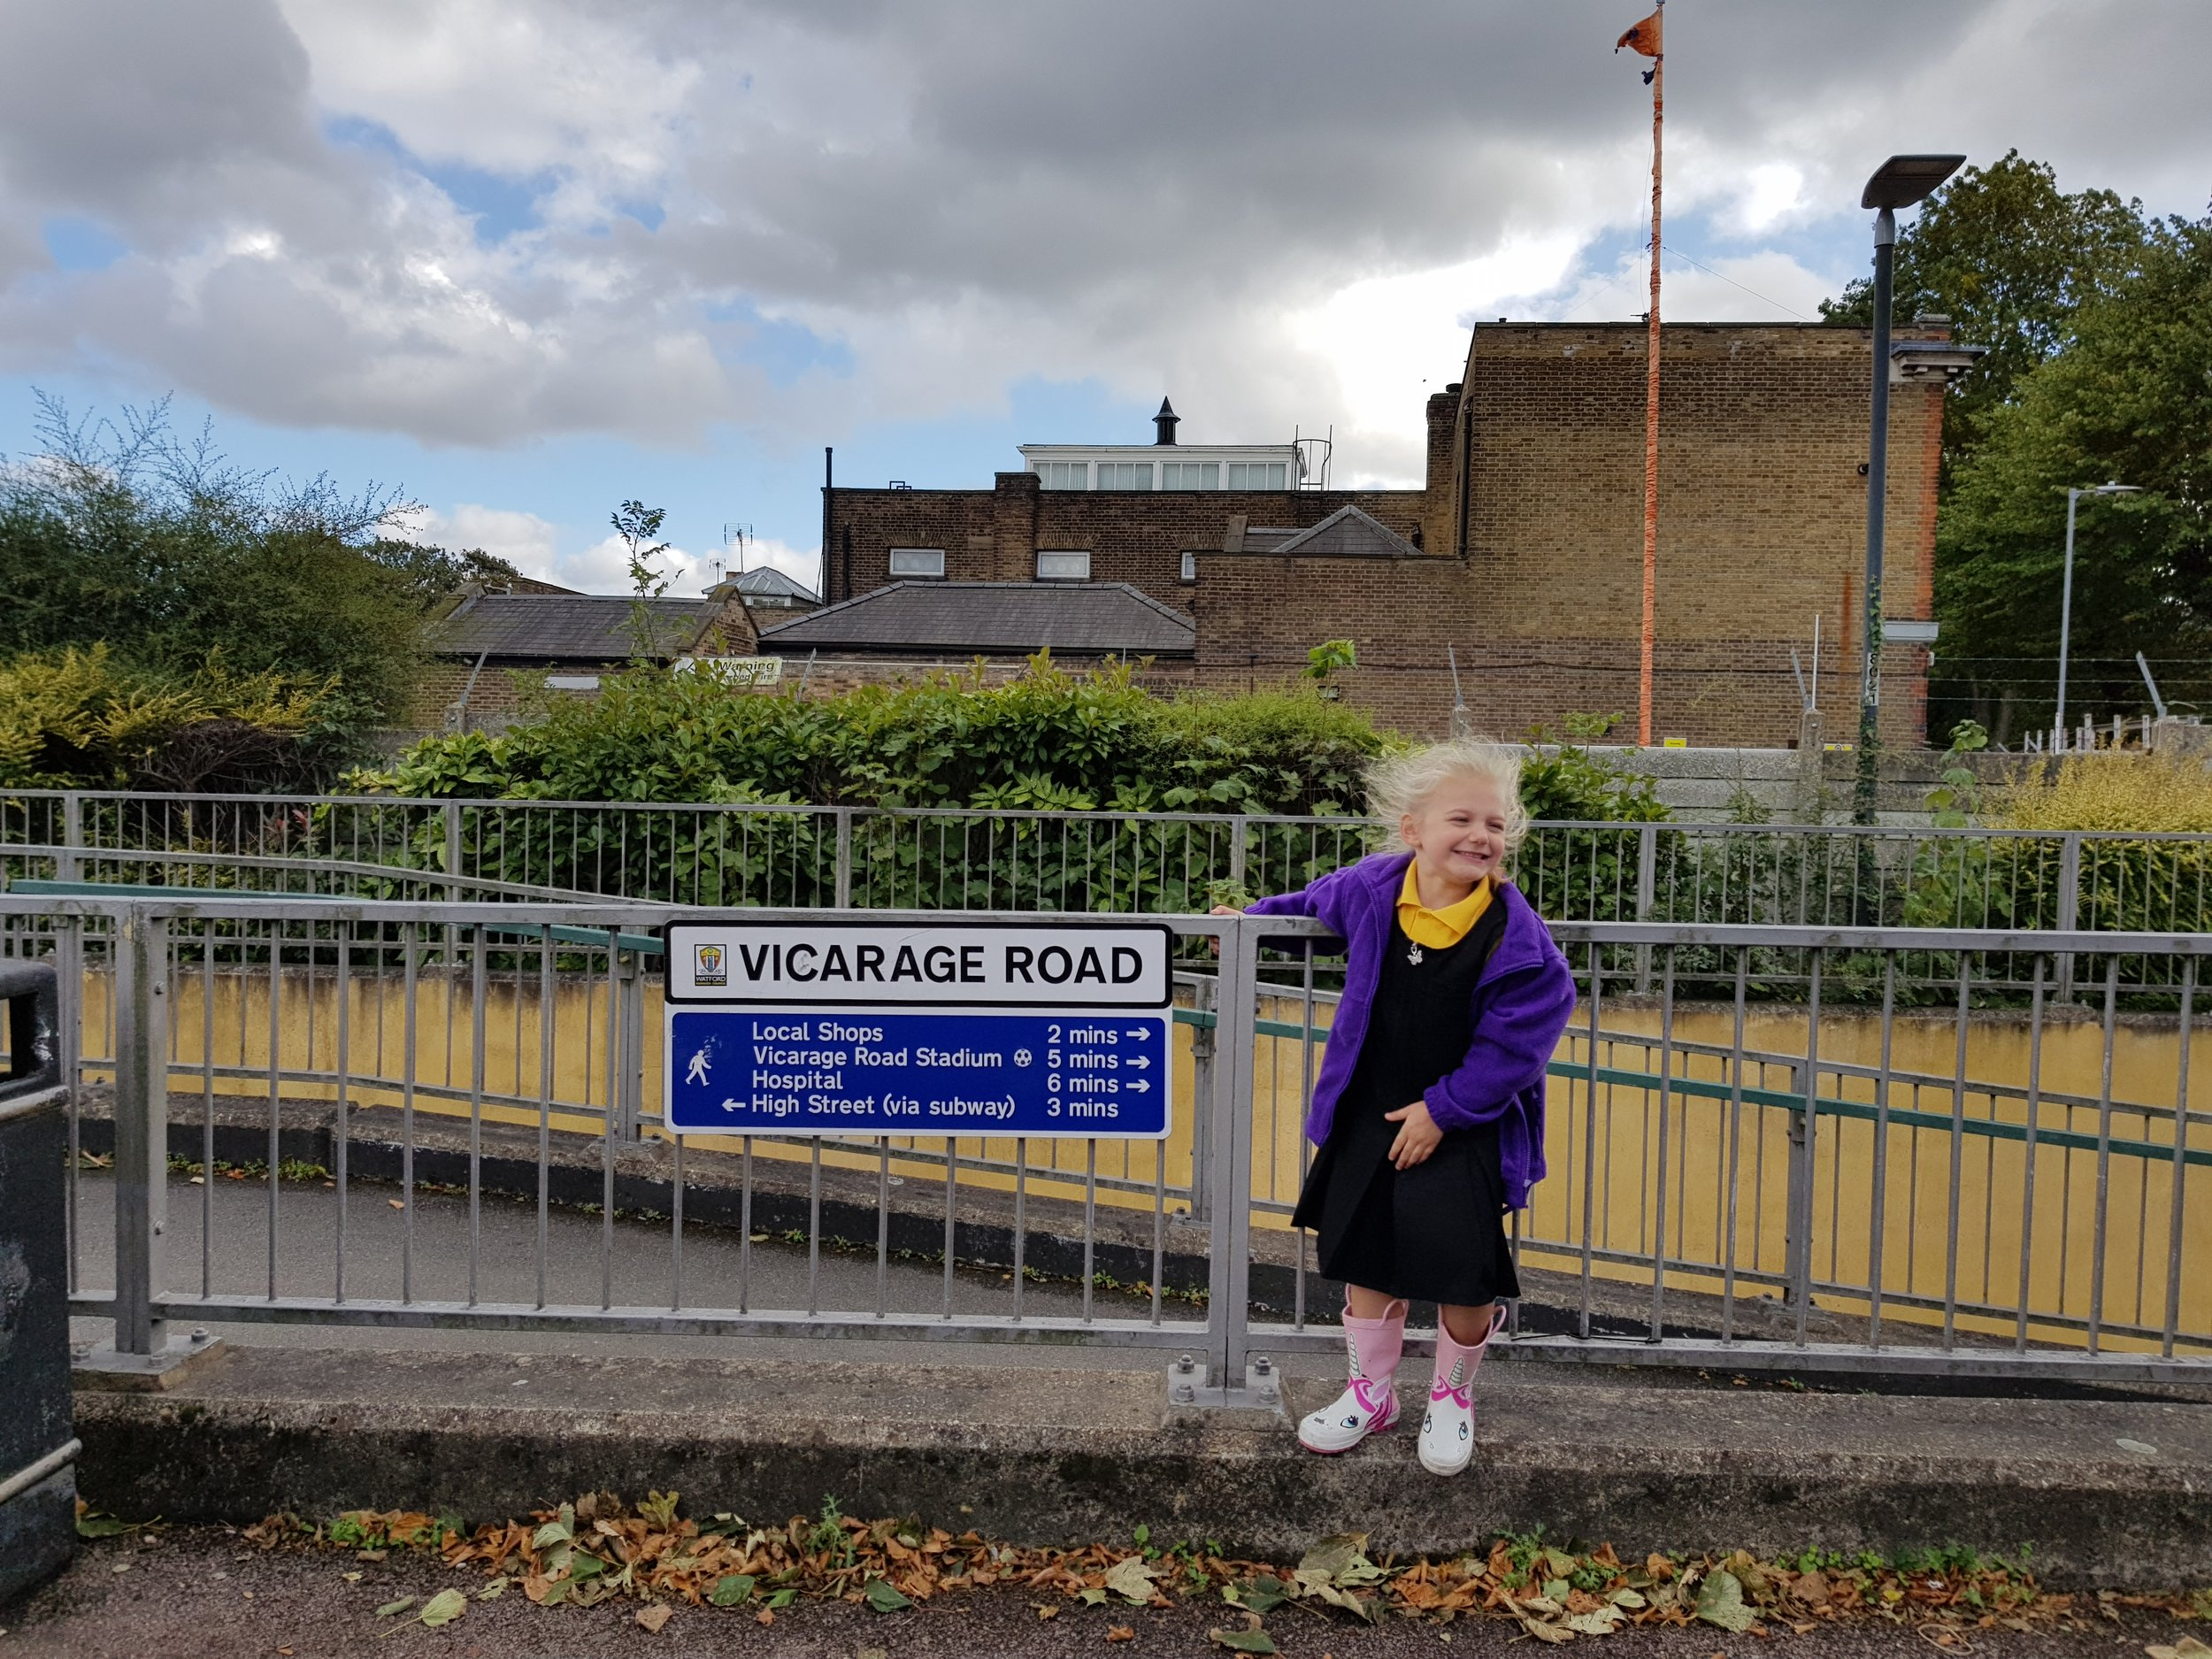 Squidgy in her uniform on Vicarage Road